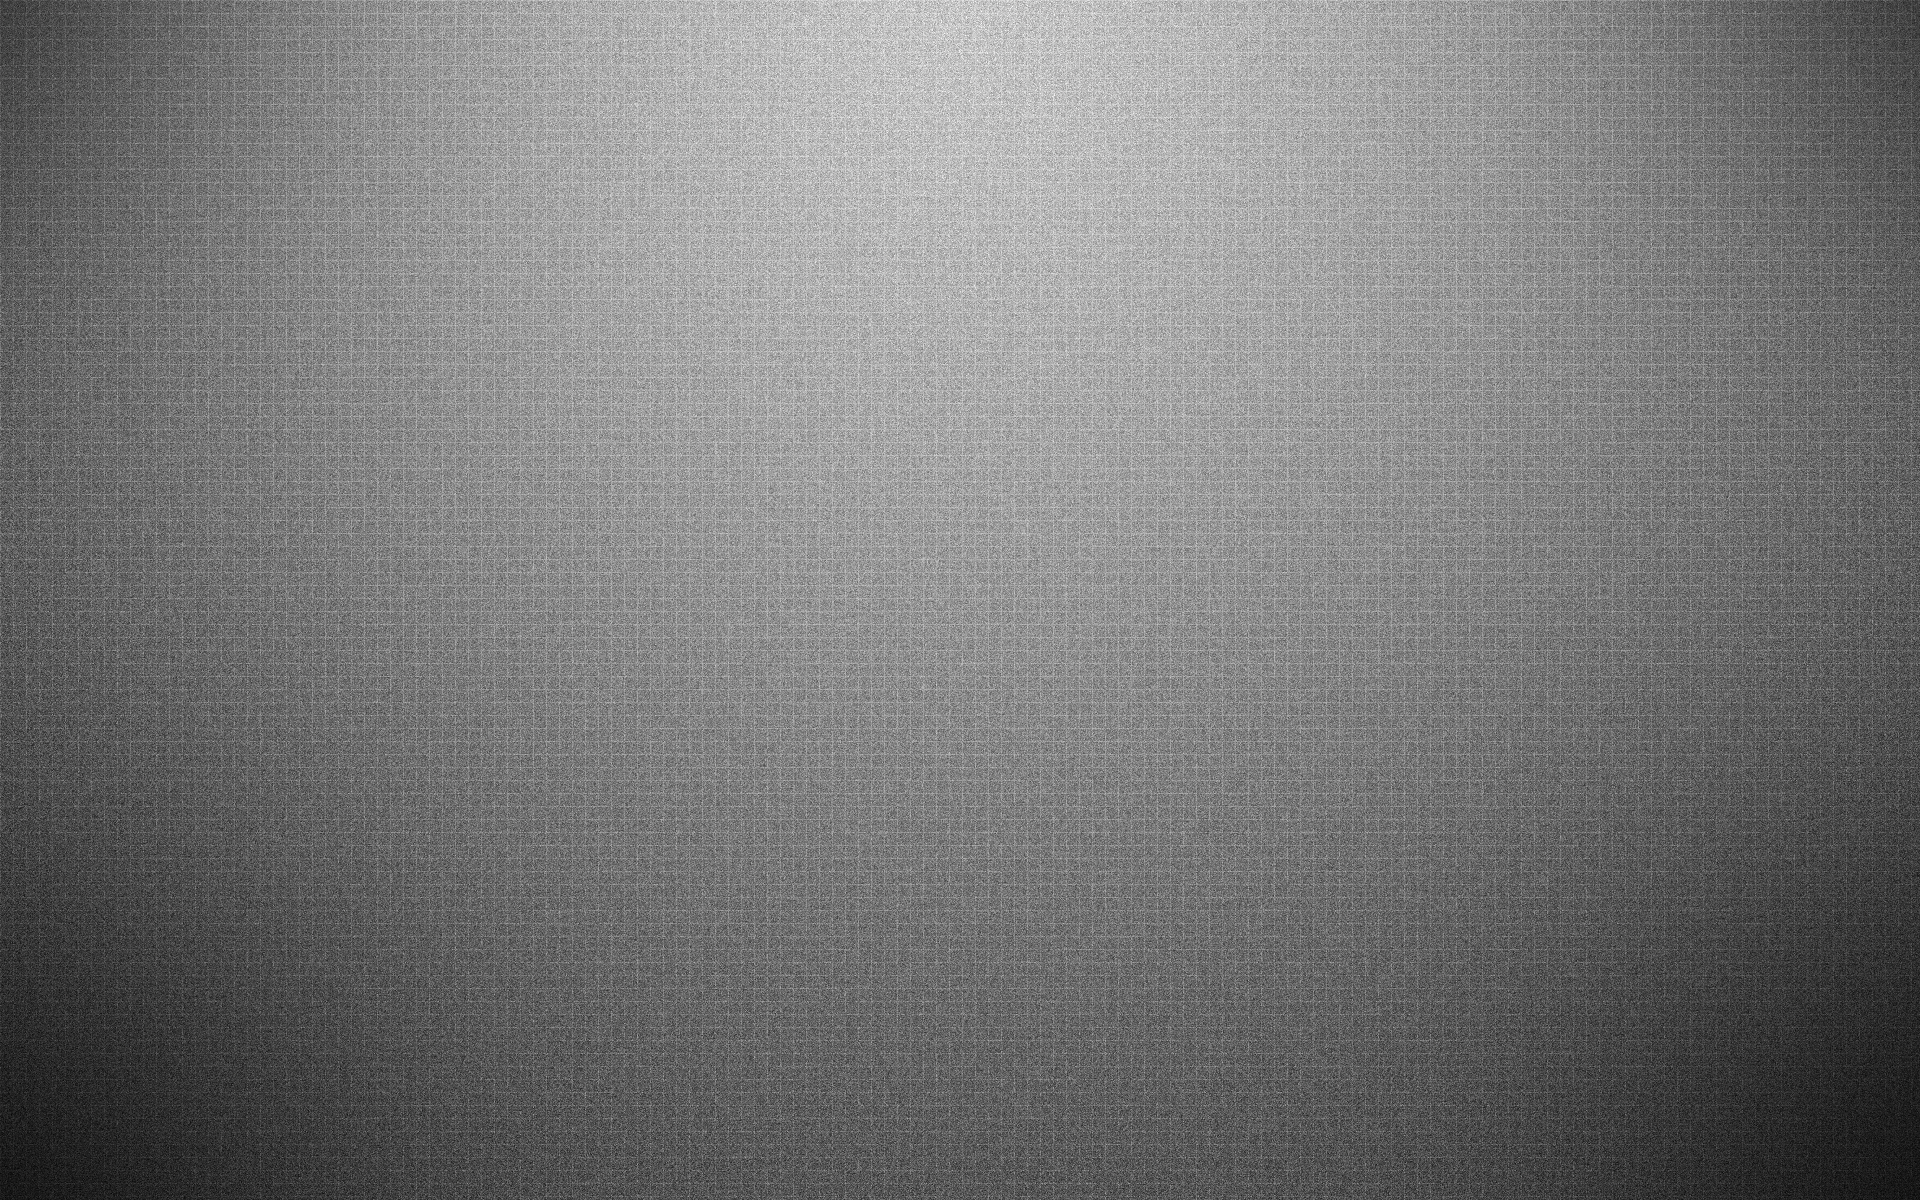 29 grey wallpaper backgrounds images pictures design for Grey and white wallpaper designs